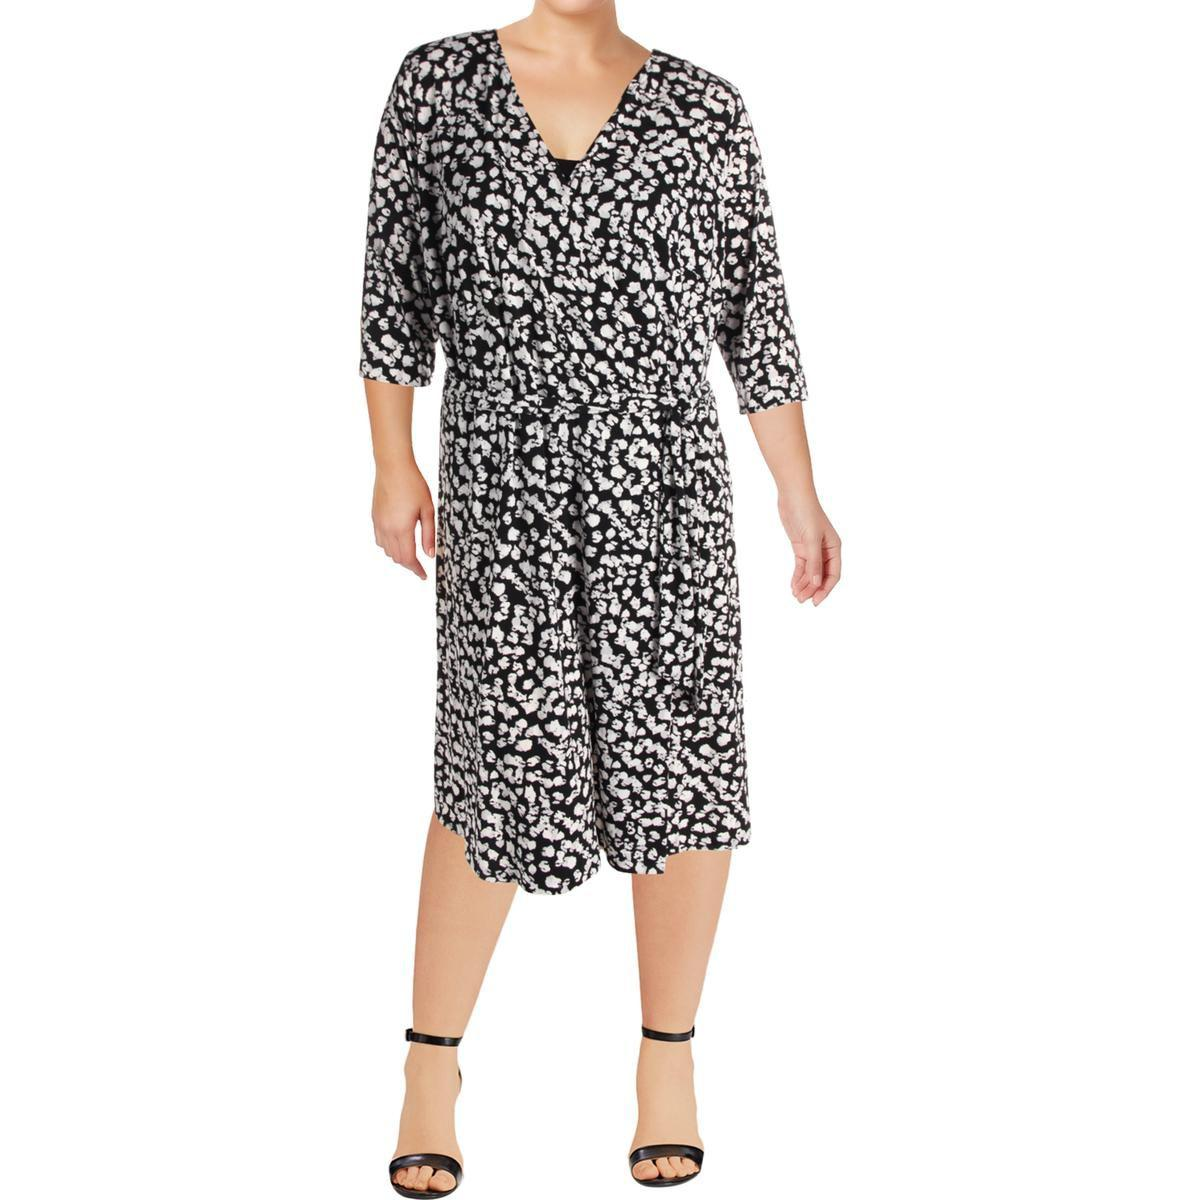 fc55c9328 Lyst - Vince Camuto Womens Plus Floral Print 3 4 Sleeve Wrap Dress ...